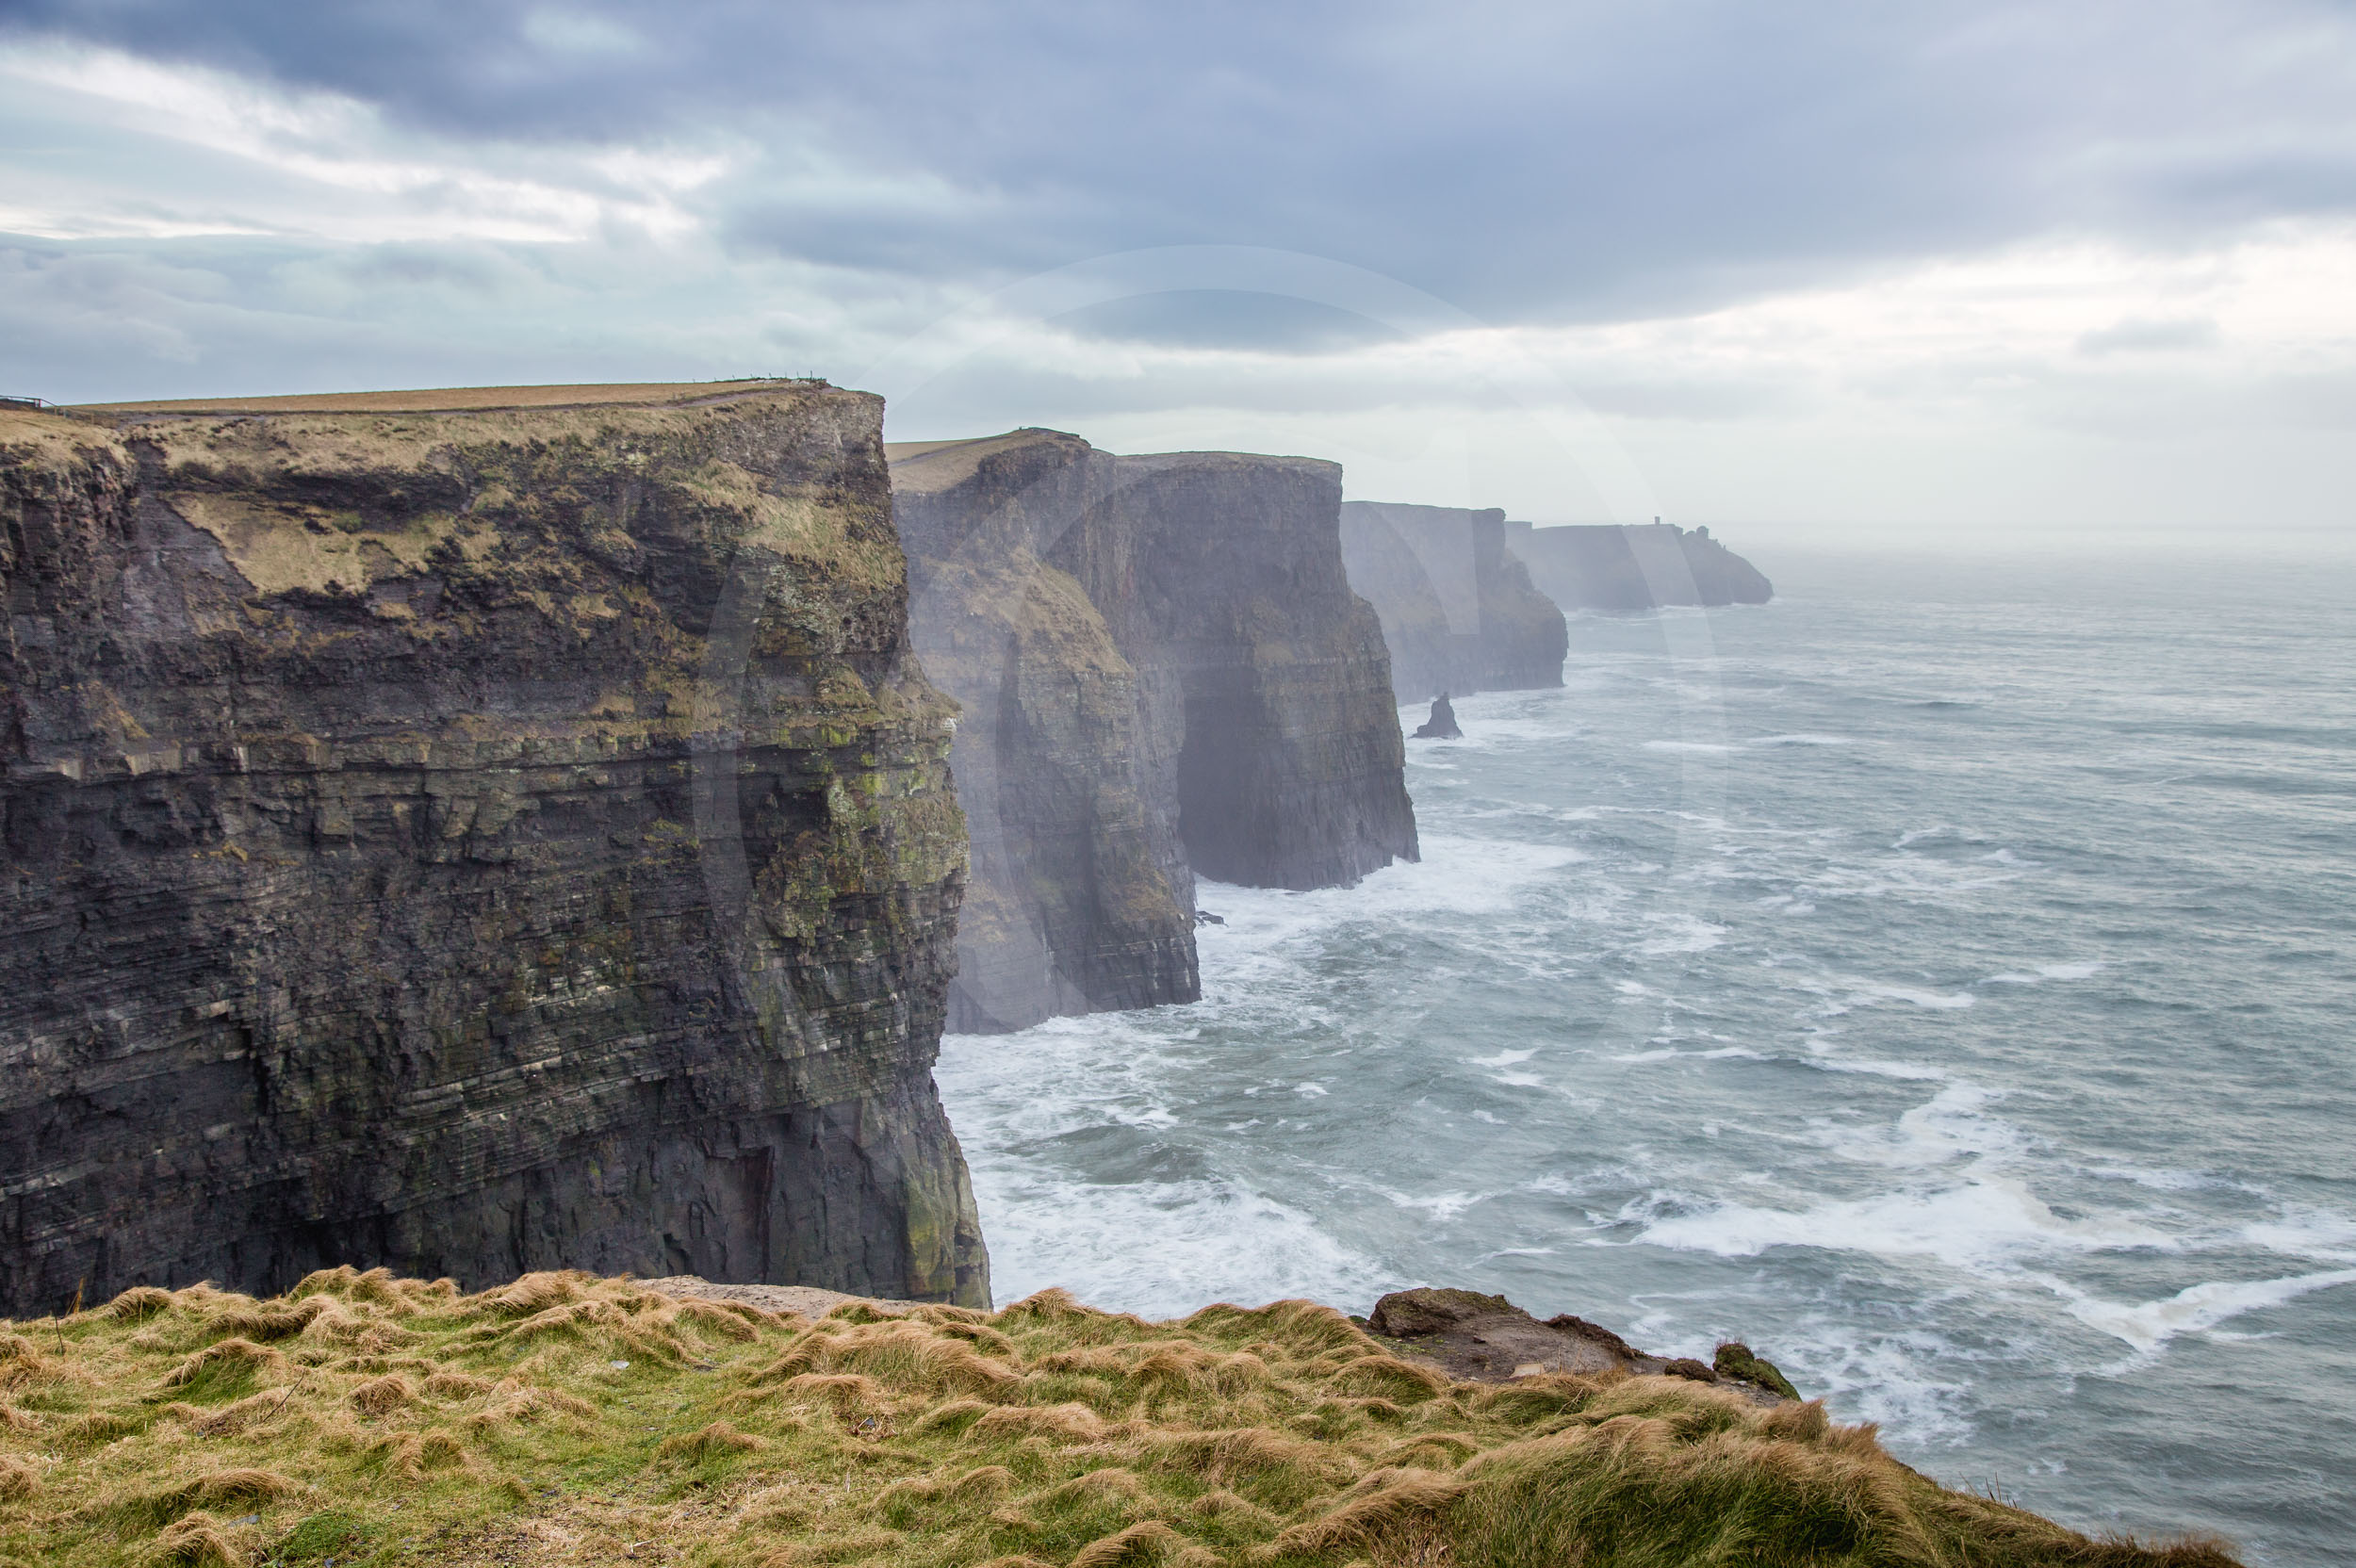 The Cliffs of Moher, Co Clare